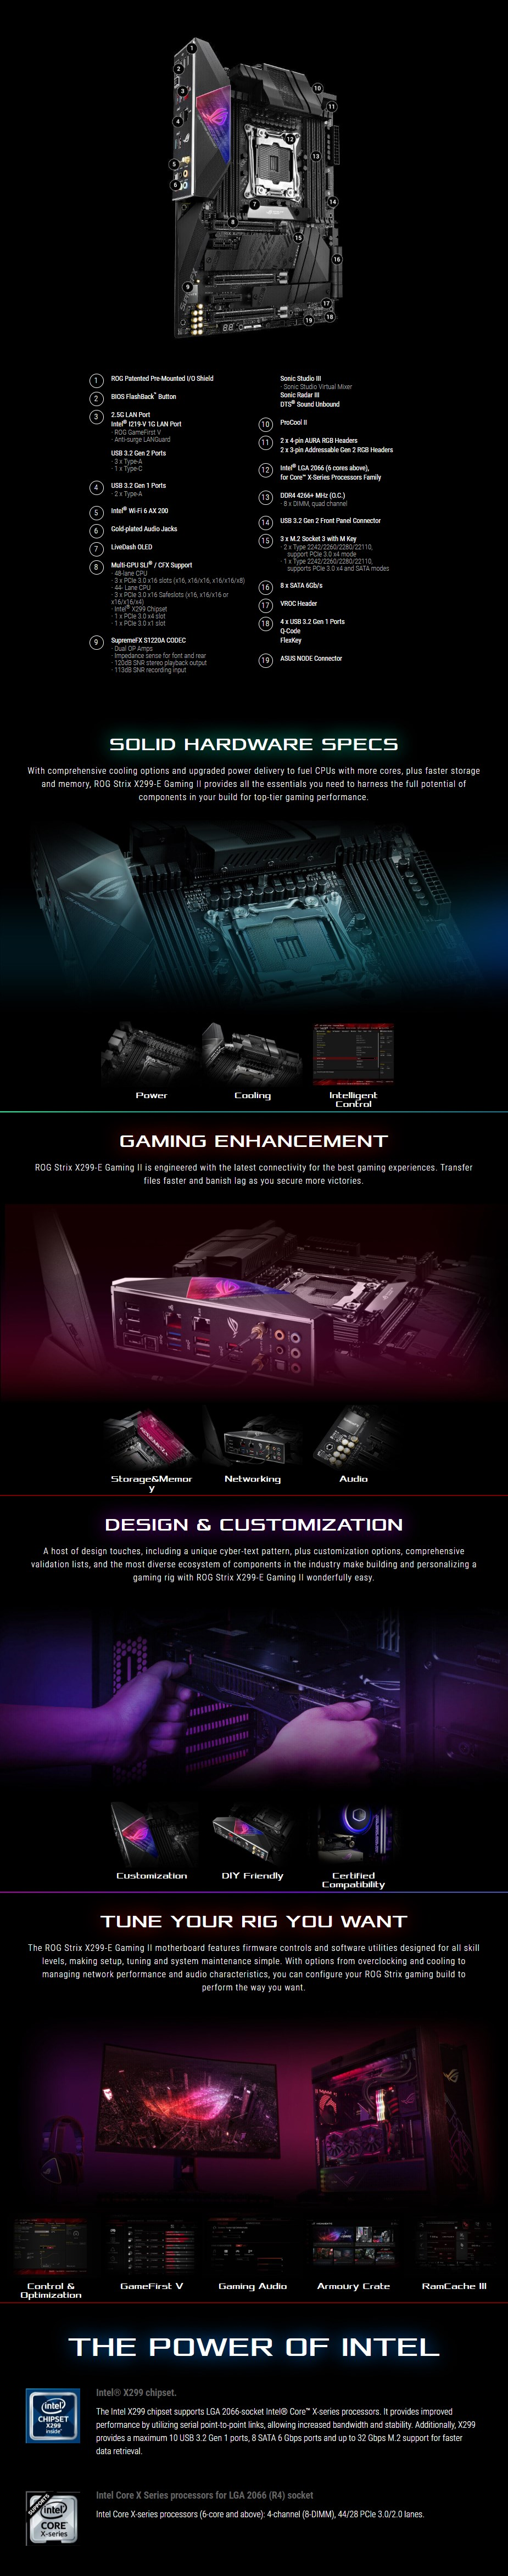 ASUS ROG Strix X299-E Gaming II LGA 2066 ATX Motherboard - Overview 1